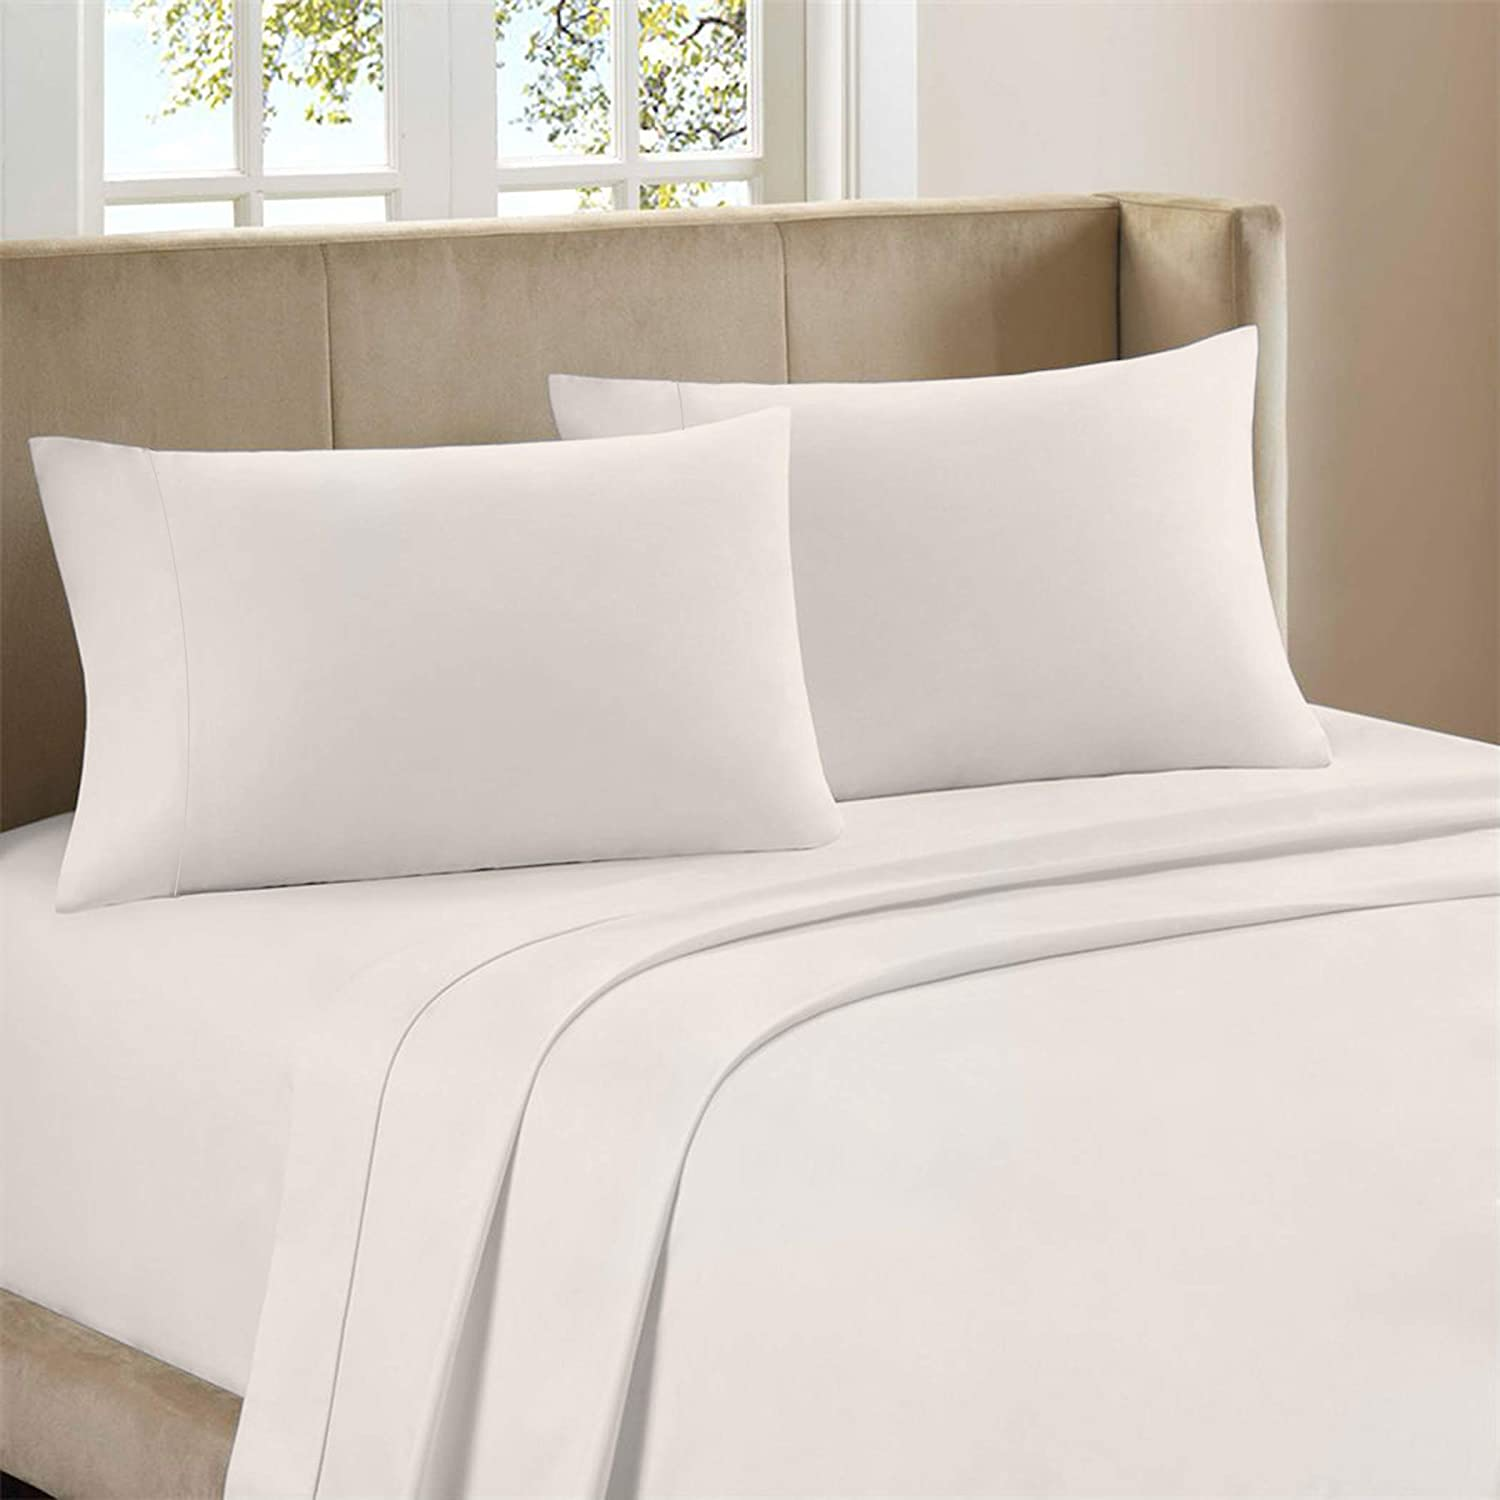 Purity Home Soft & Light Weight 100% Combed Compact Cotton Sheet Set, 4 Piece Set, Bedding King Sheets Percale Weave, Cool & Breathable, Moisture Wicking, Fitted Sheet Fits Upto 18